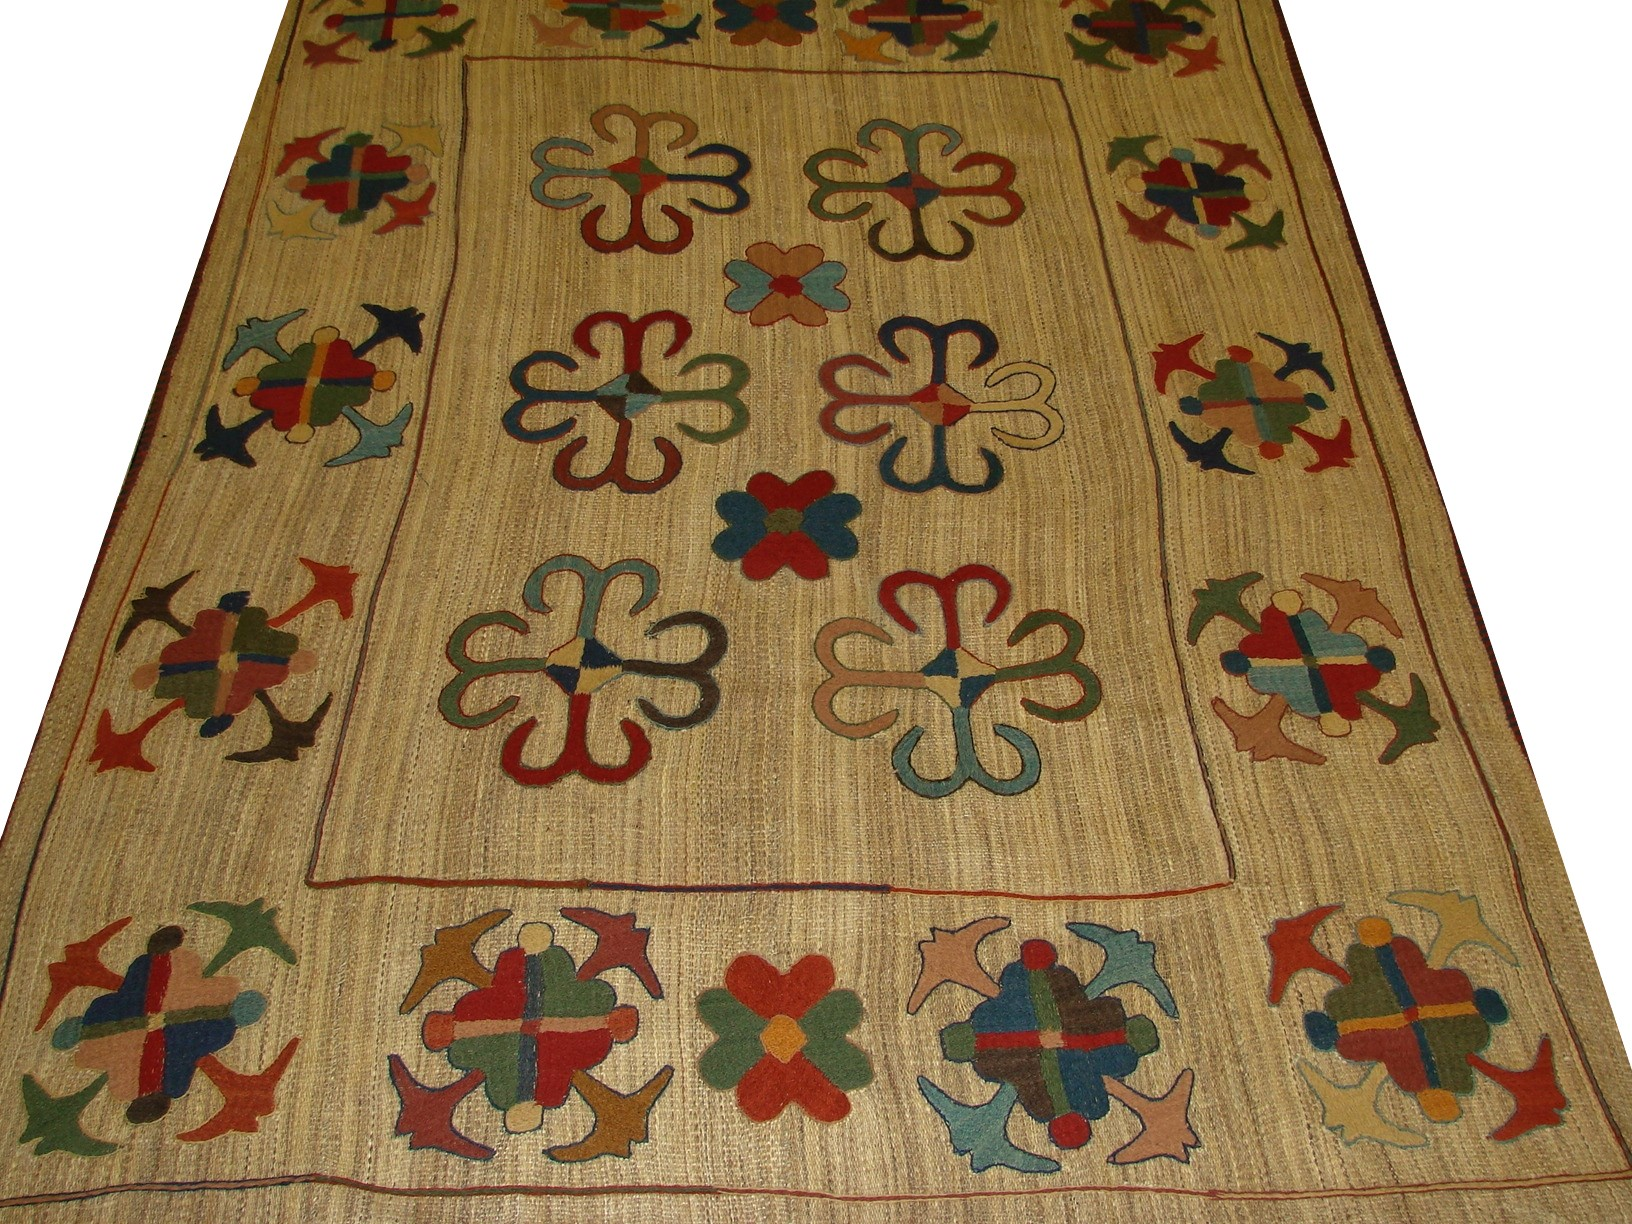 5x7/8 Flat Weave Hand Knotted Wool Area Rug - MR13181